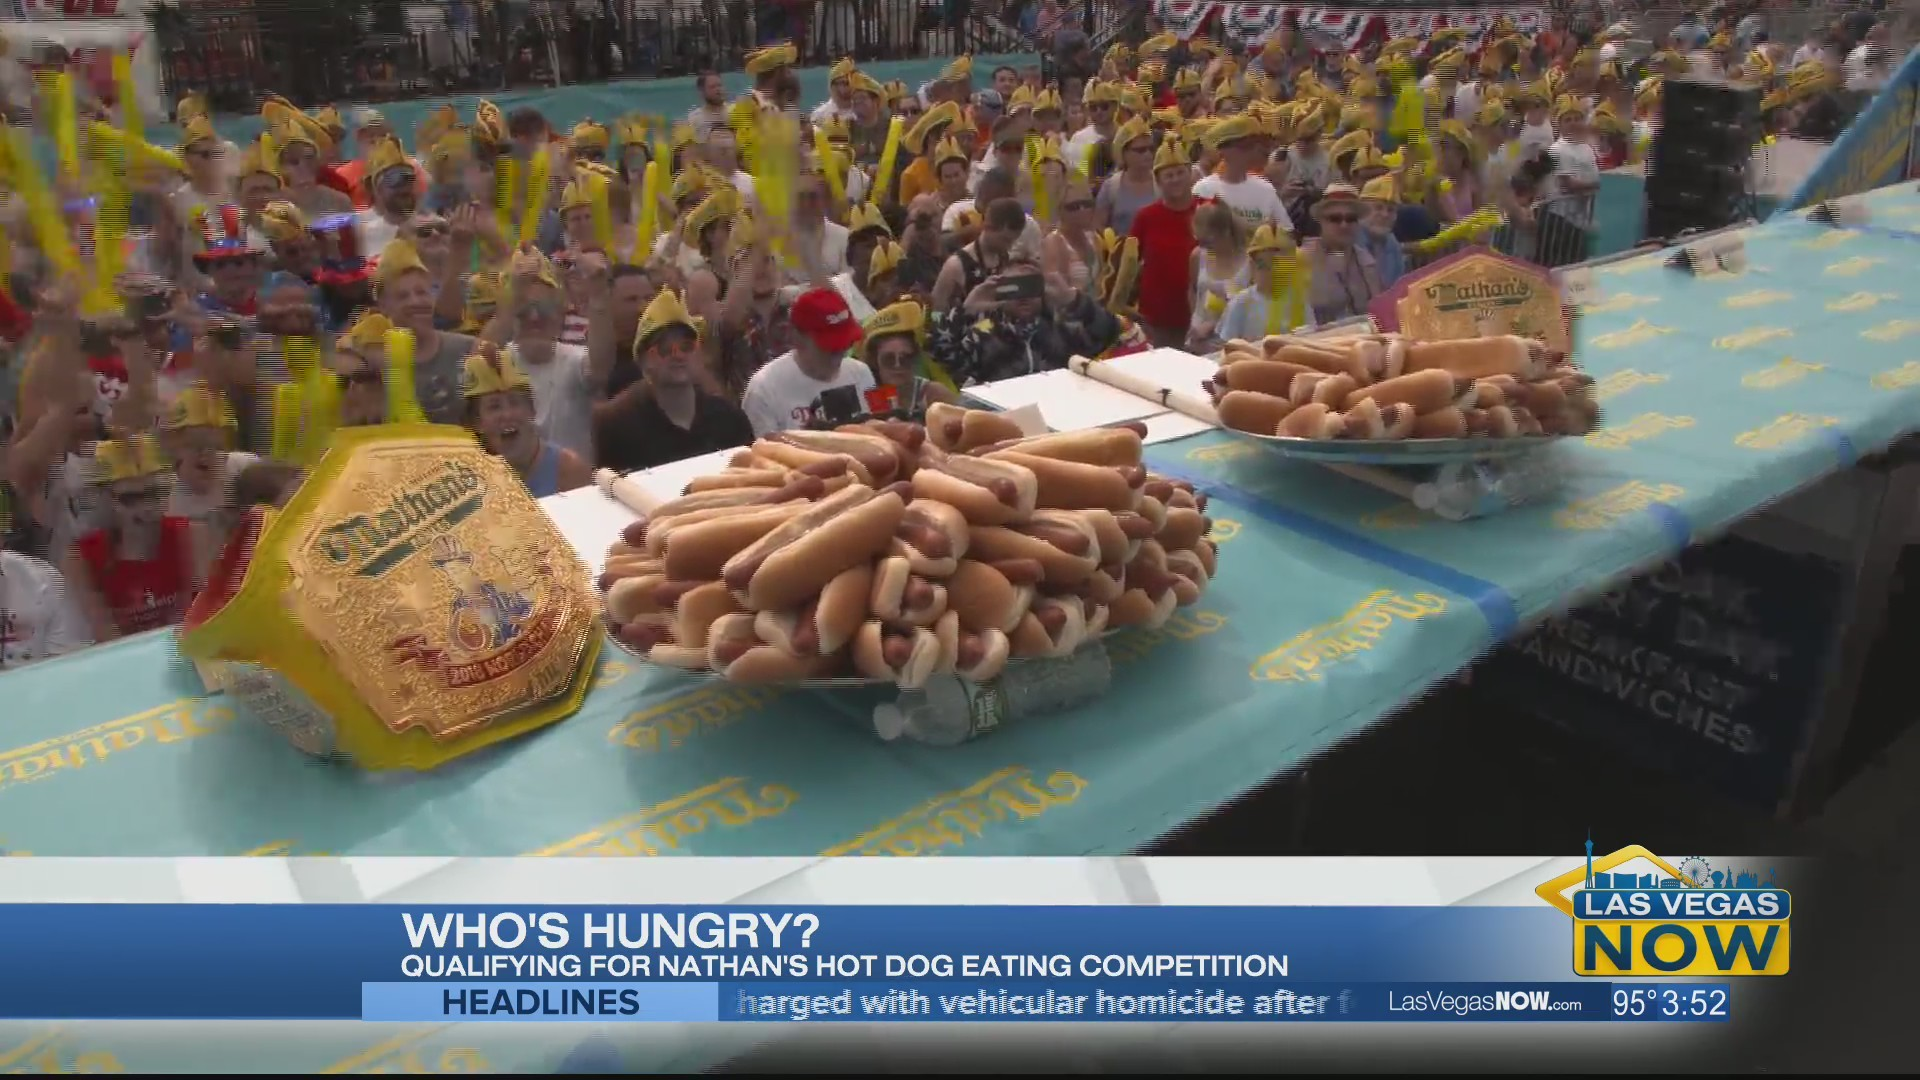 Qualifying for Nathan's Hot Dog Eating Competition